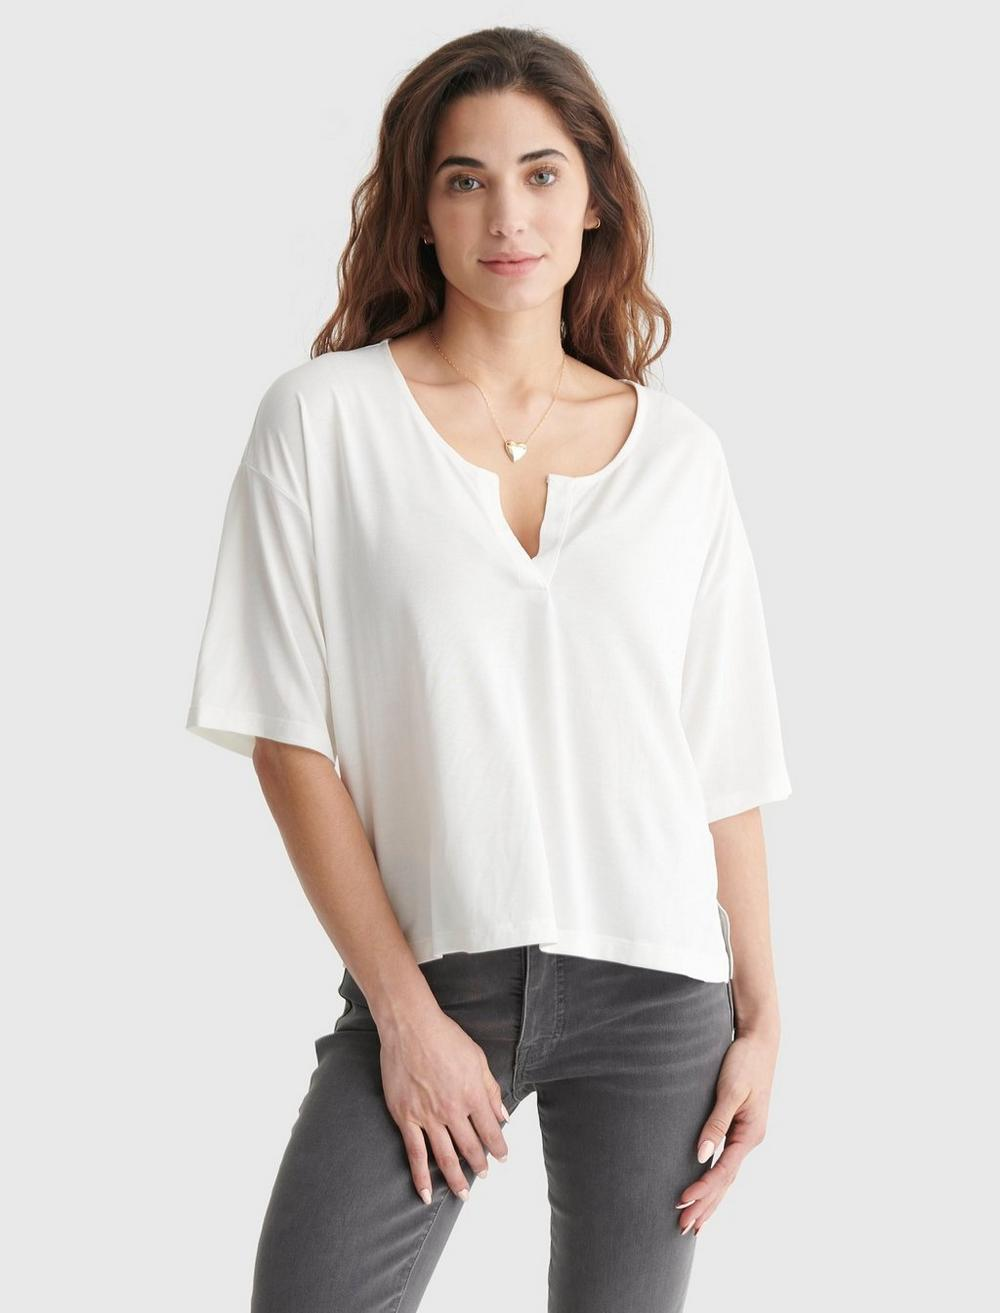 RELAXED-FIT V-NECK KNIT TOP, image 1